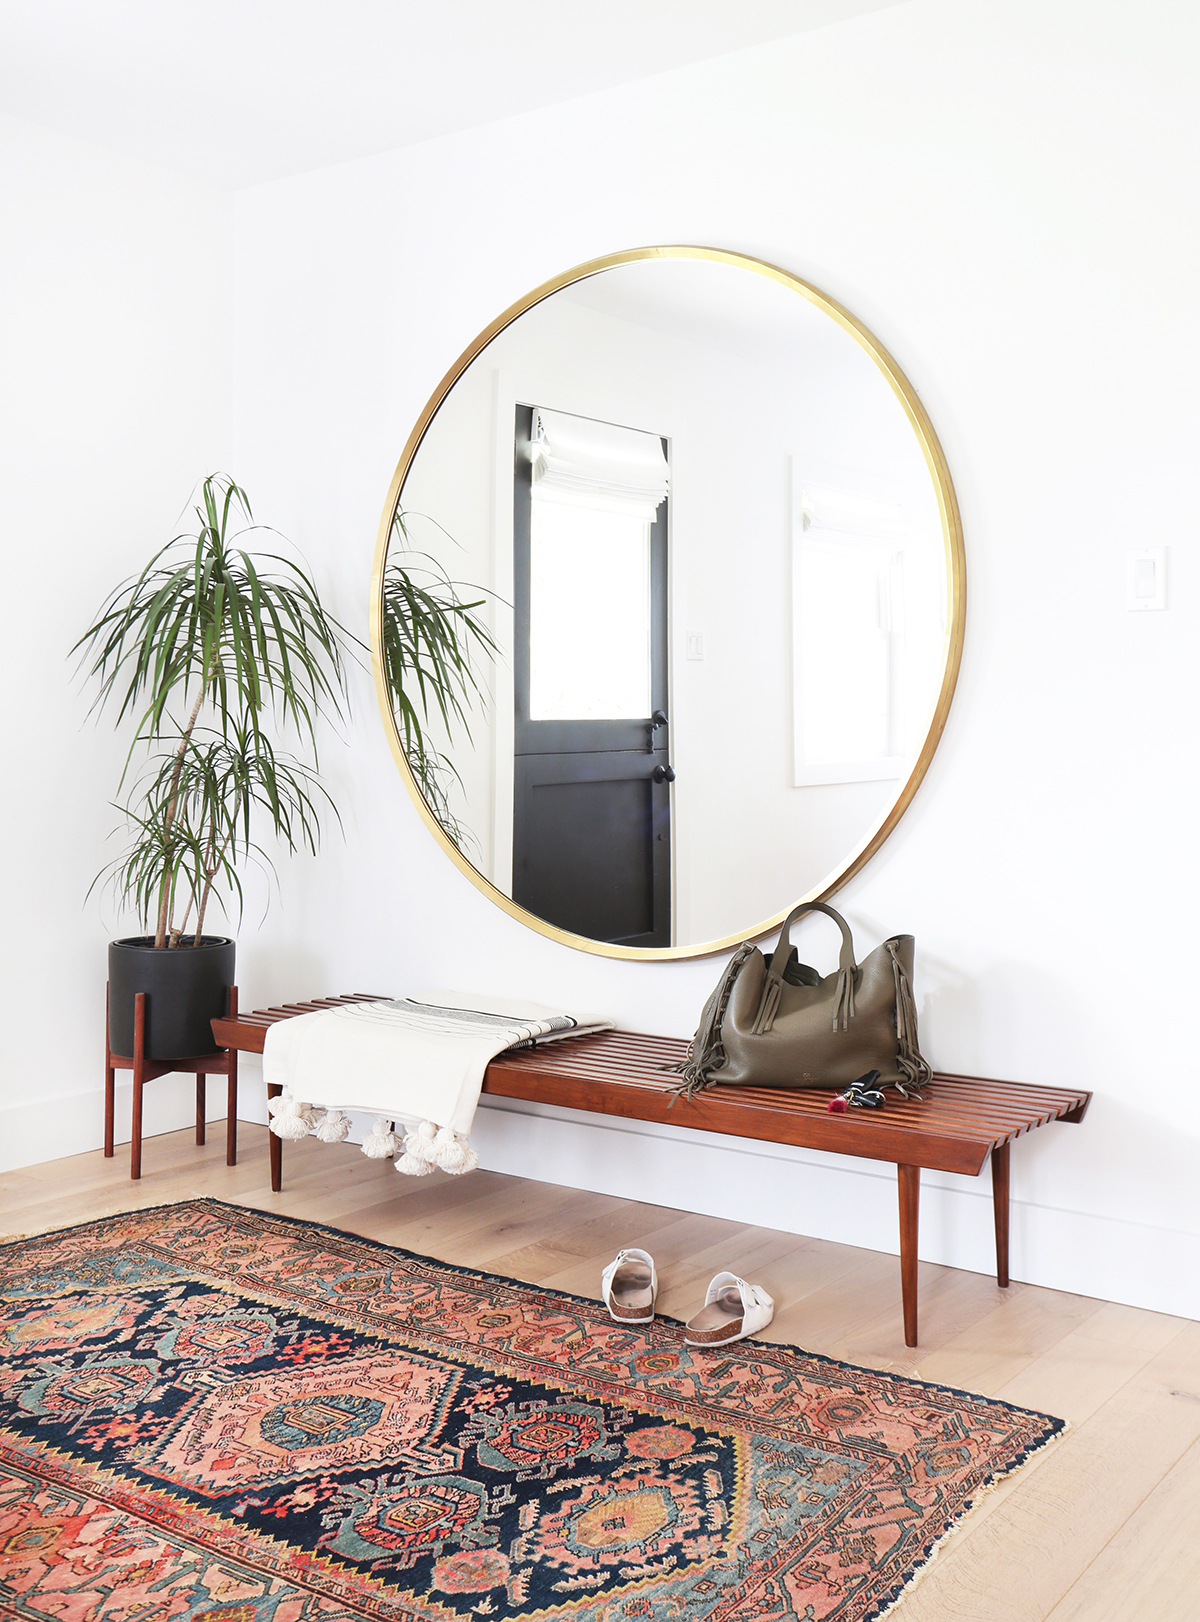 Use Round Mirrors To Complete Any Room In Your Home | Kathy Within Round Eclectic Accent Mirrors (View 20 of 30)